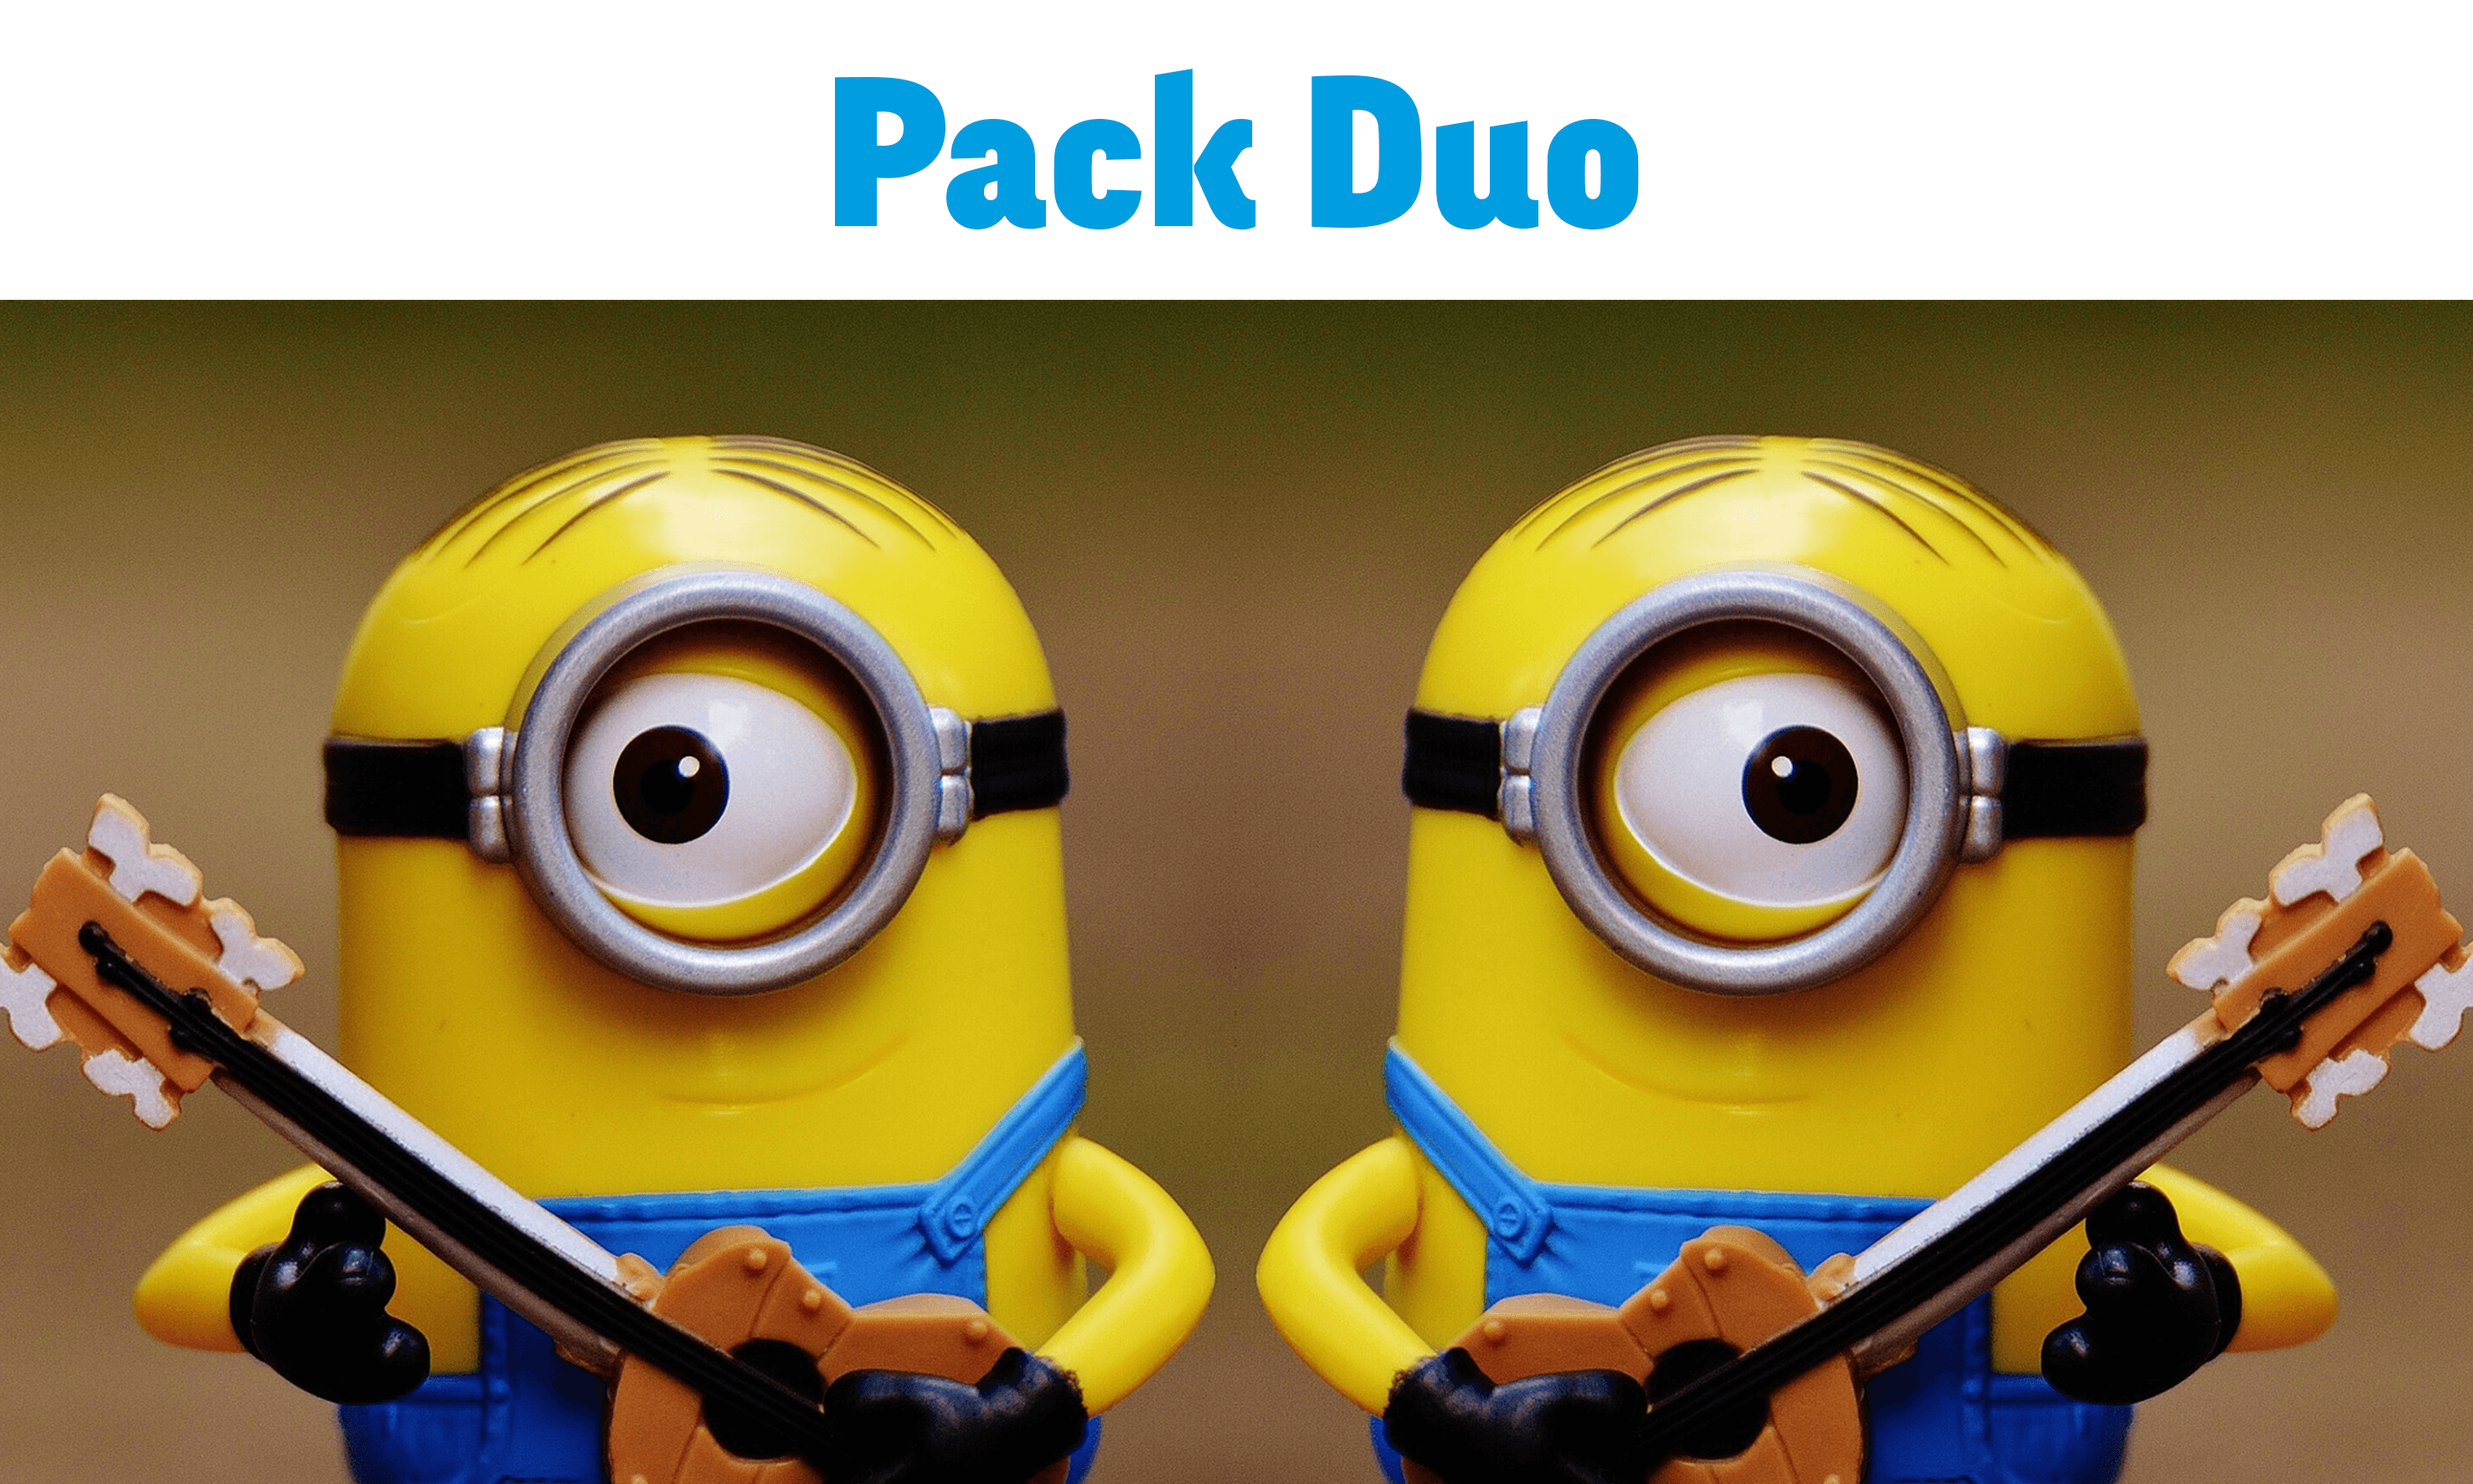 Pack_Duo2-1464706302.png